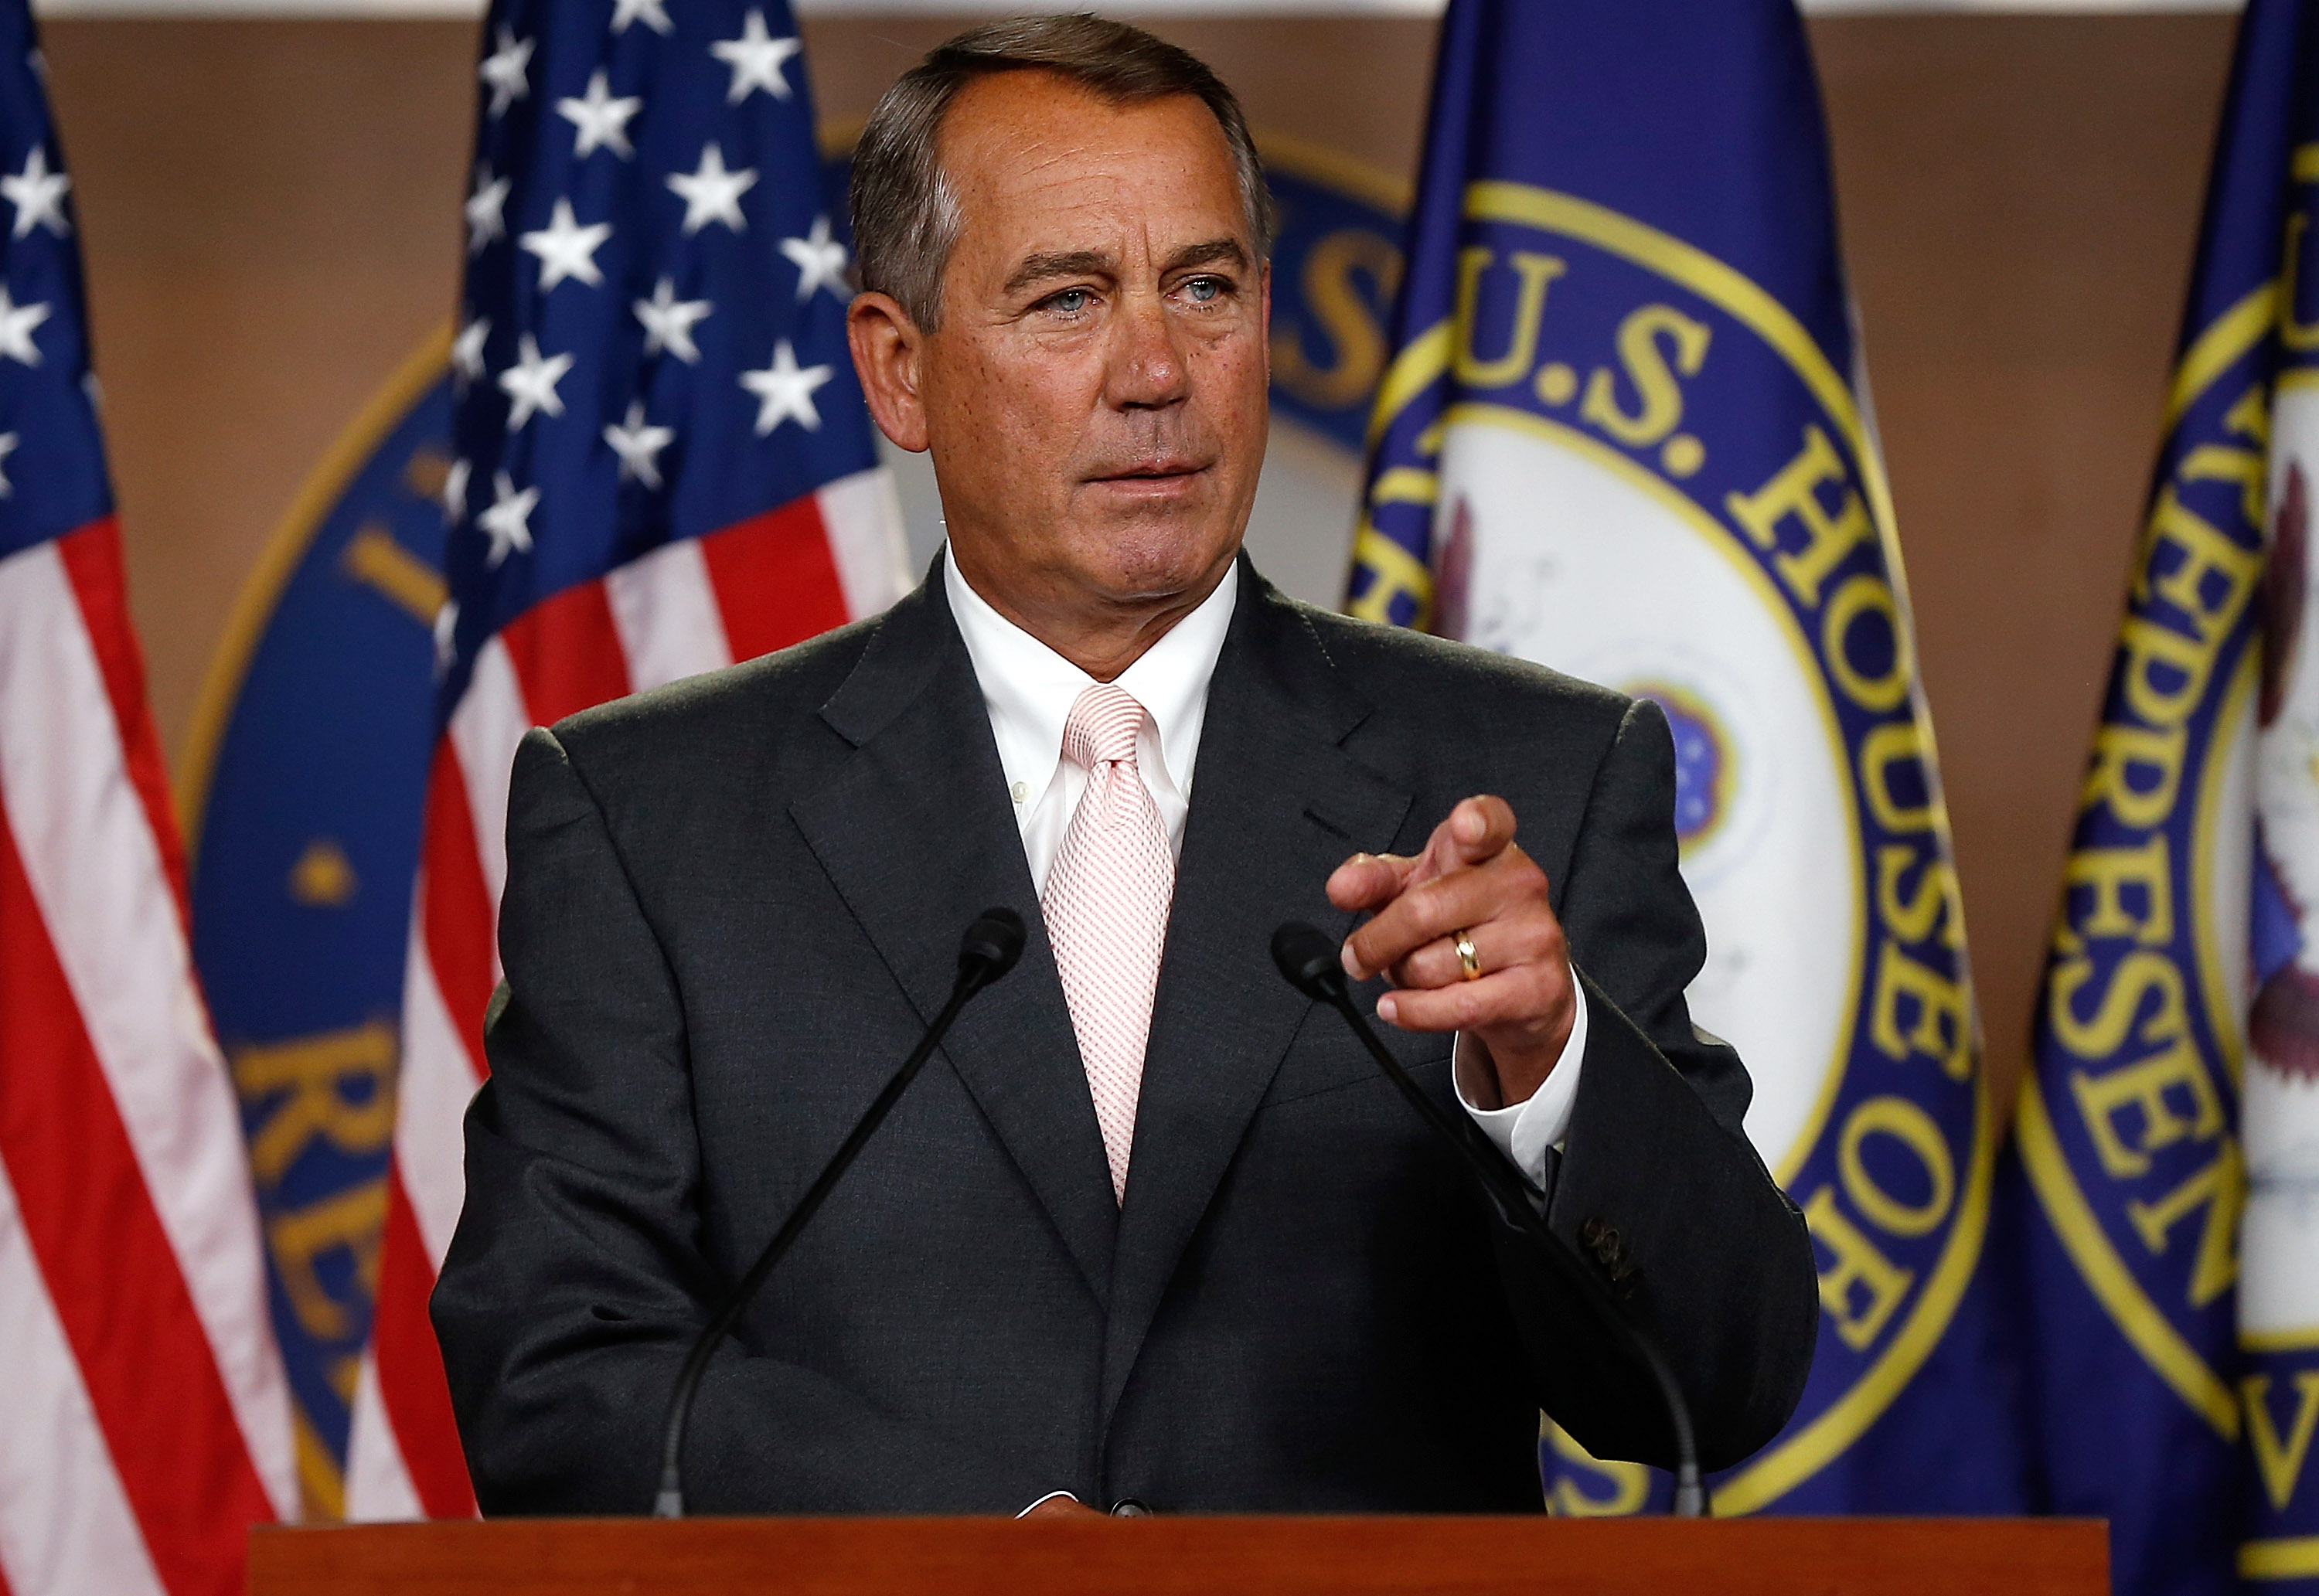 U.S. Speaker of the House John Boehner (R-OH) answers questions during his weekly press conference at the U.S. Capitol July 10, 2014 in Washington, DC.